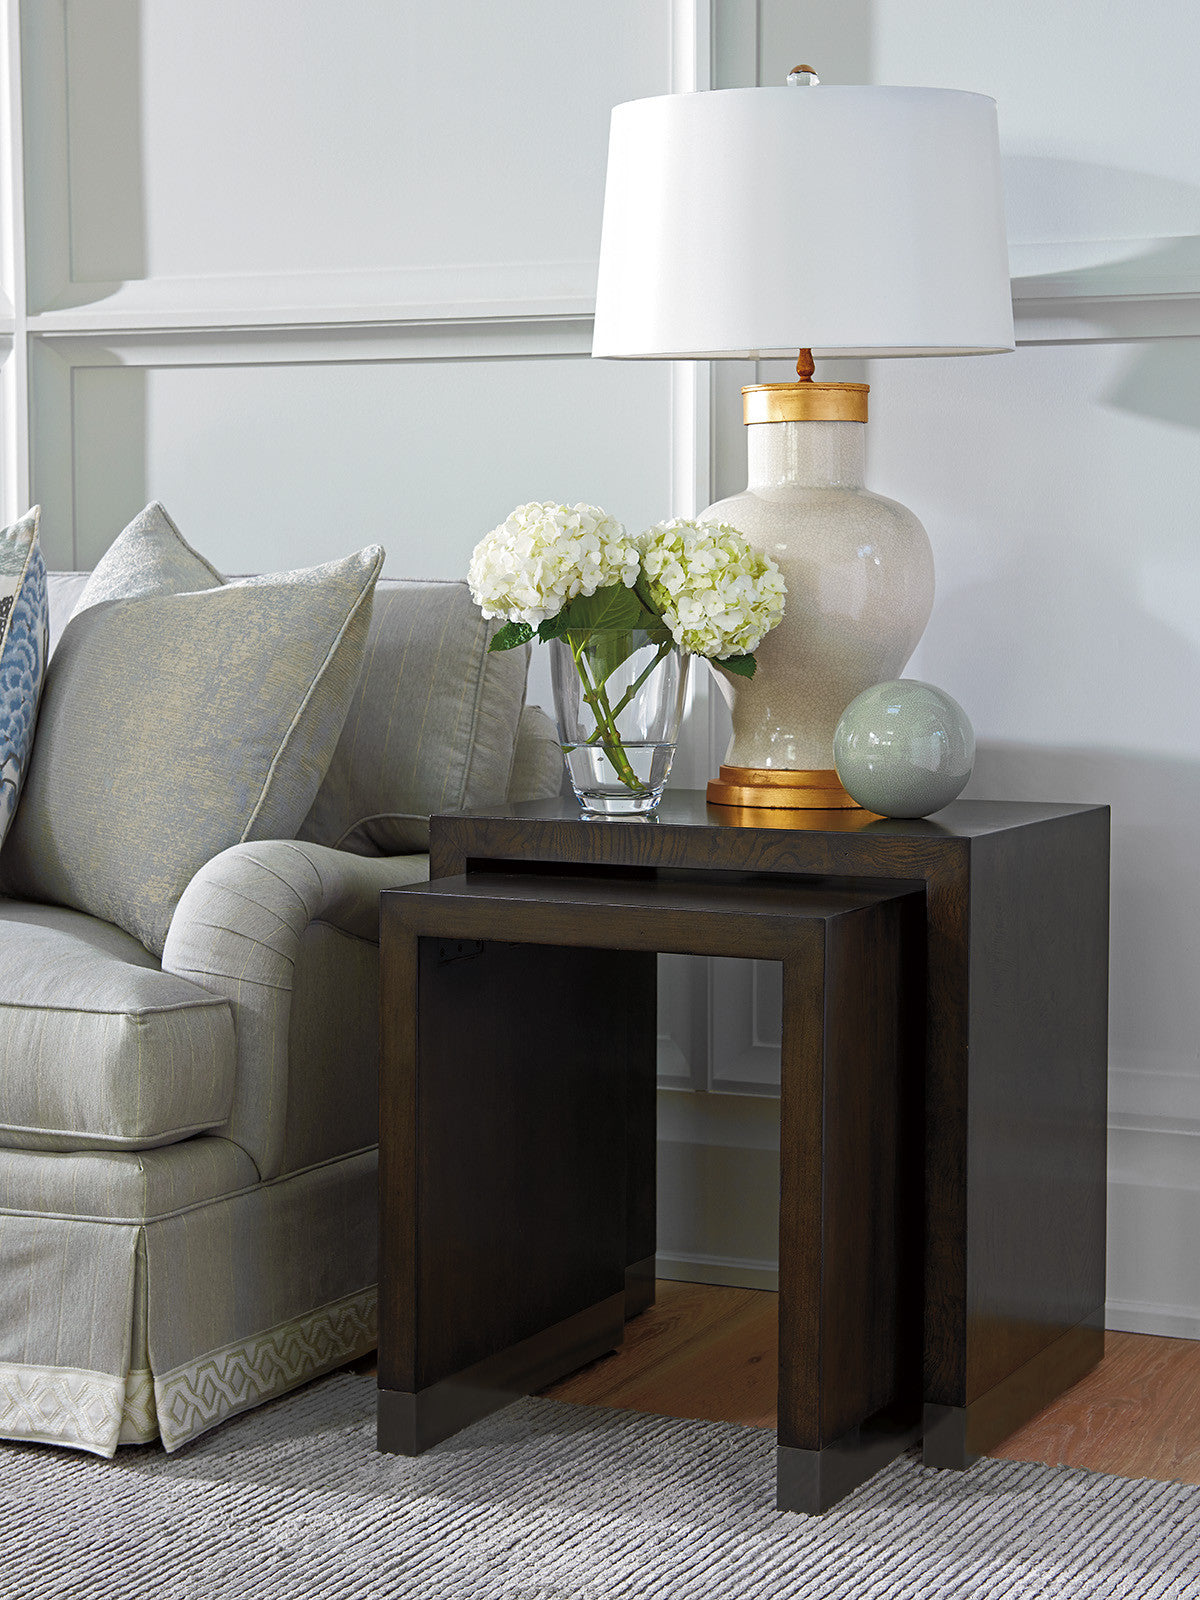 Deerbrook Nesting Tables by shopbarclaybutera